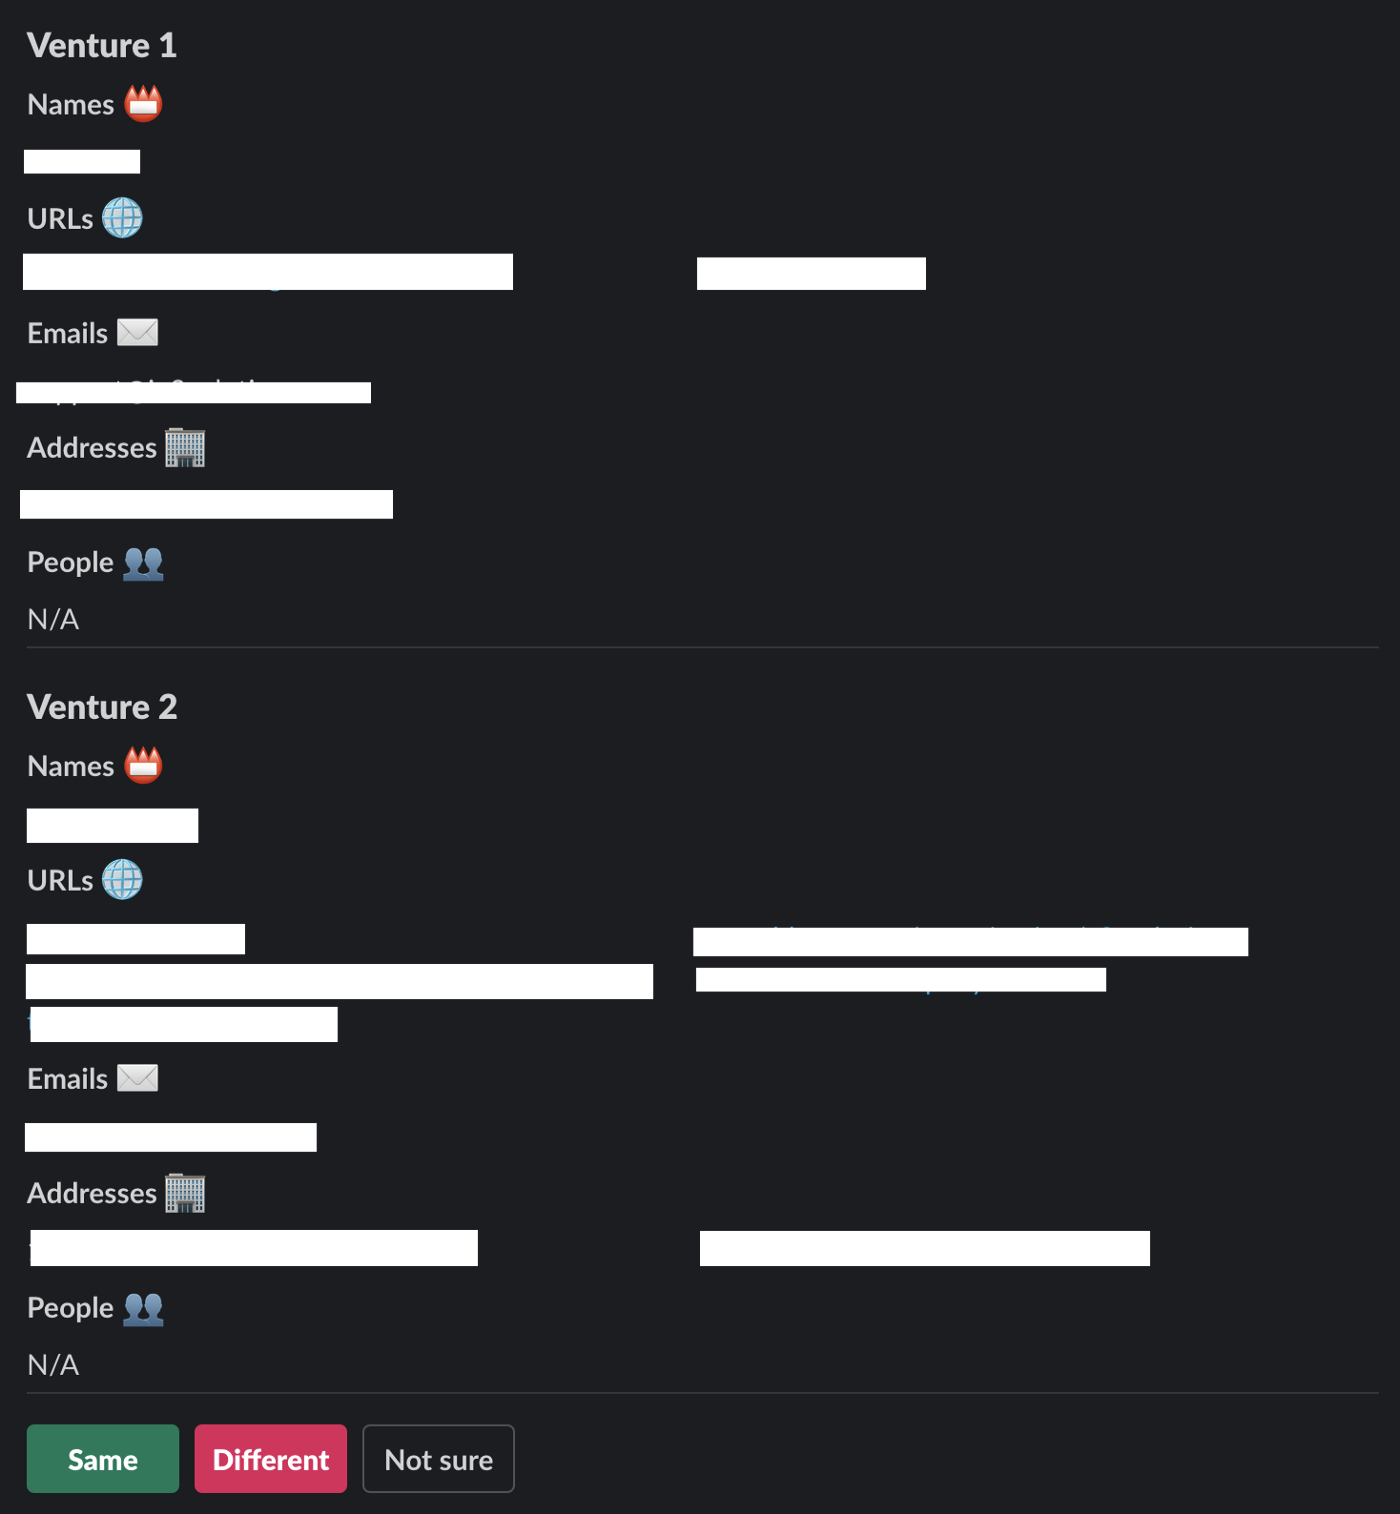 """Slack interface with 2 sets of redacted venture information, with 3 buttons at the bottom that say, """"Same"""", """"Different"""" and """"Not sure""""."""